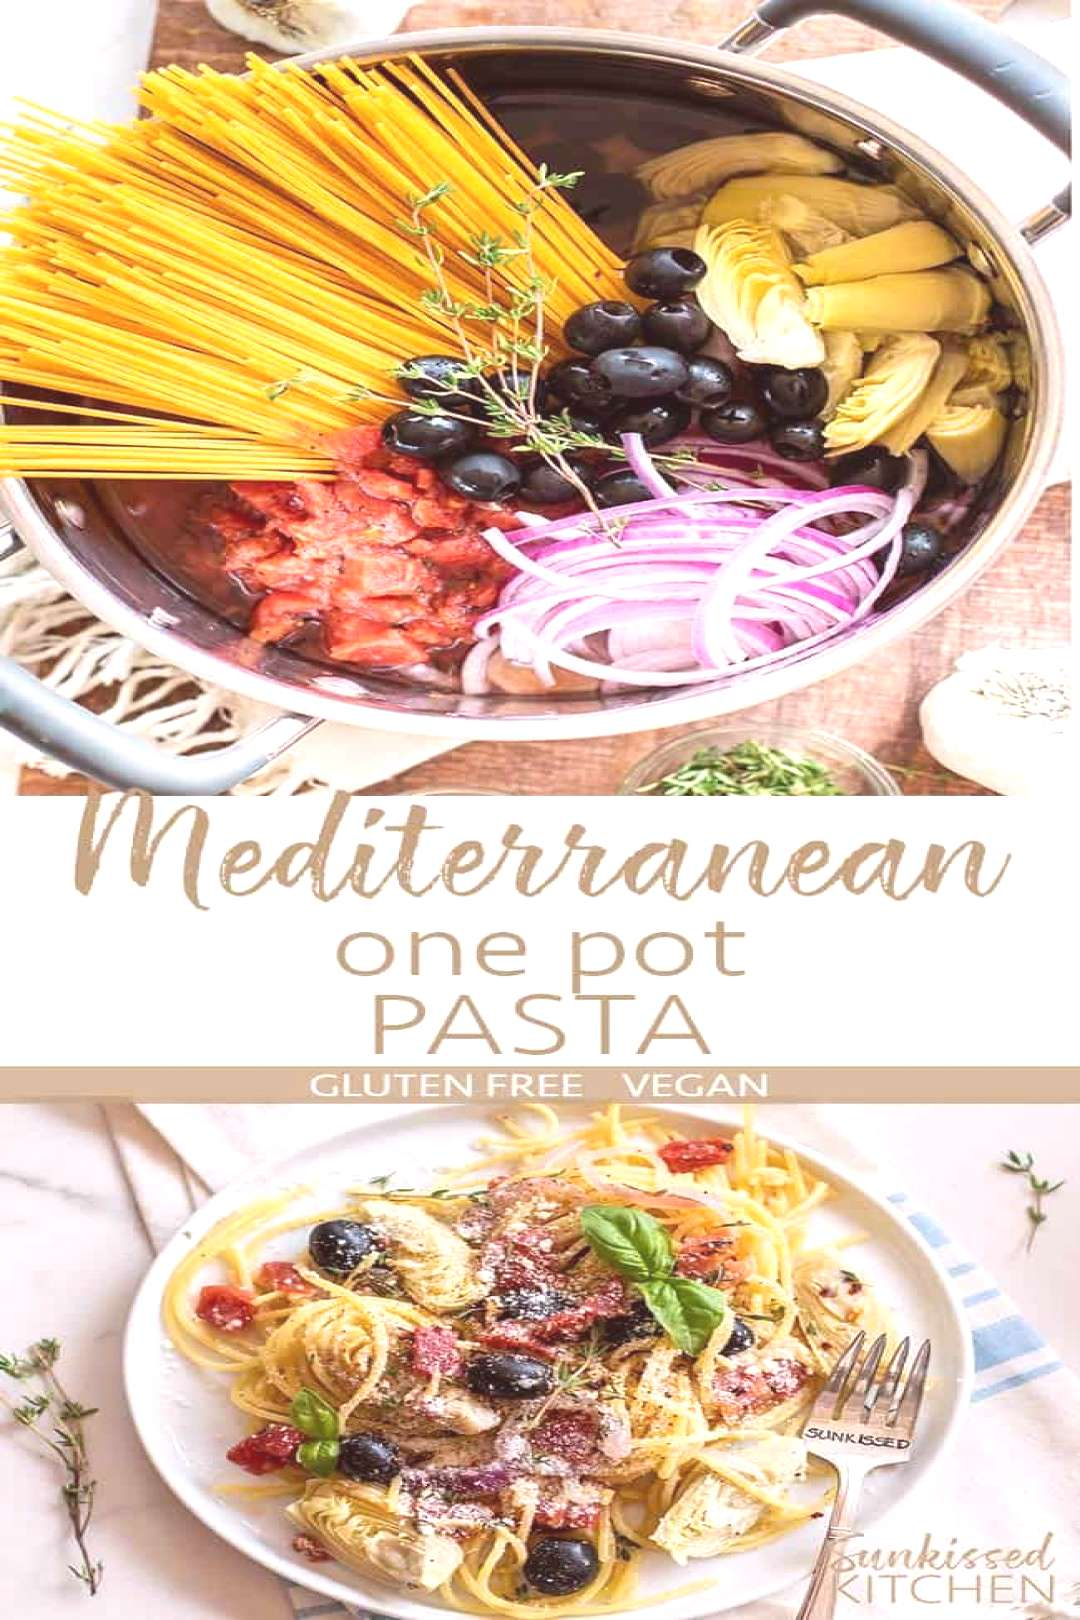 All the ingredients for Mediterranean One Pot Pasta shown in a pot, and a dish of pasta topped with